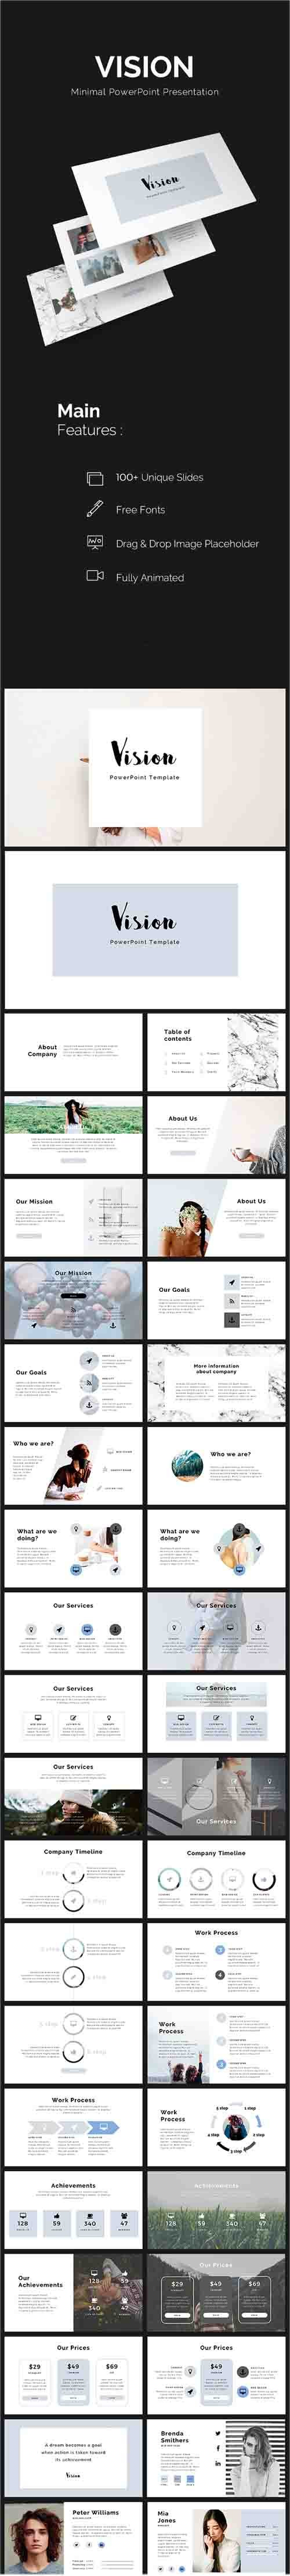 GR - Vision Minimal PowerPoint Template 19373442